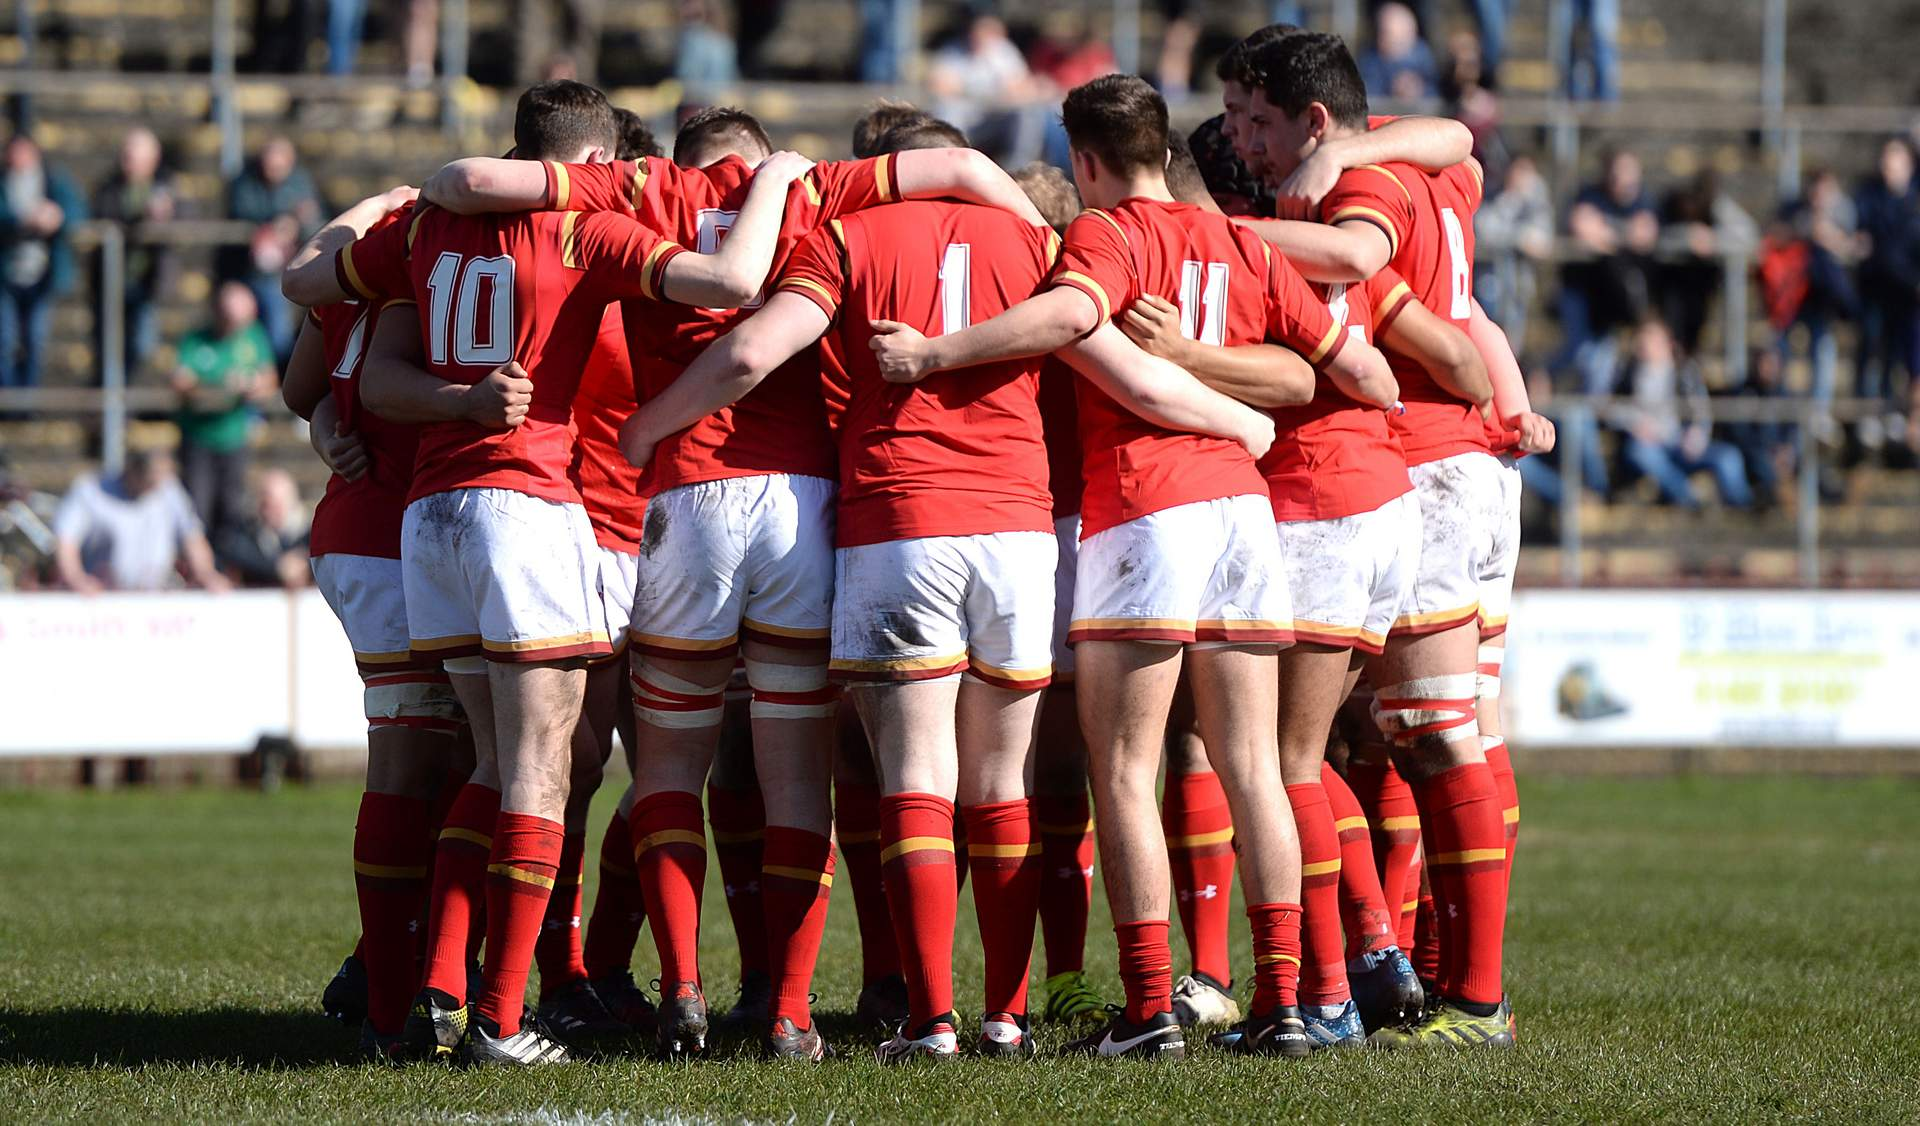 Wales to host U18 International Series this April